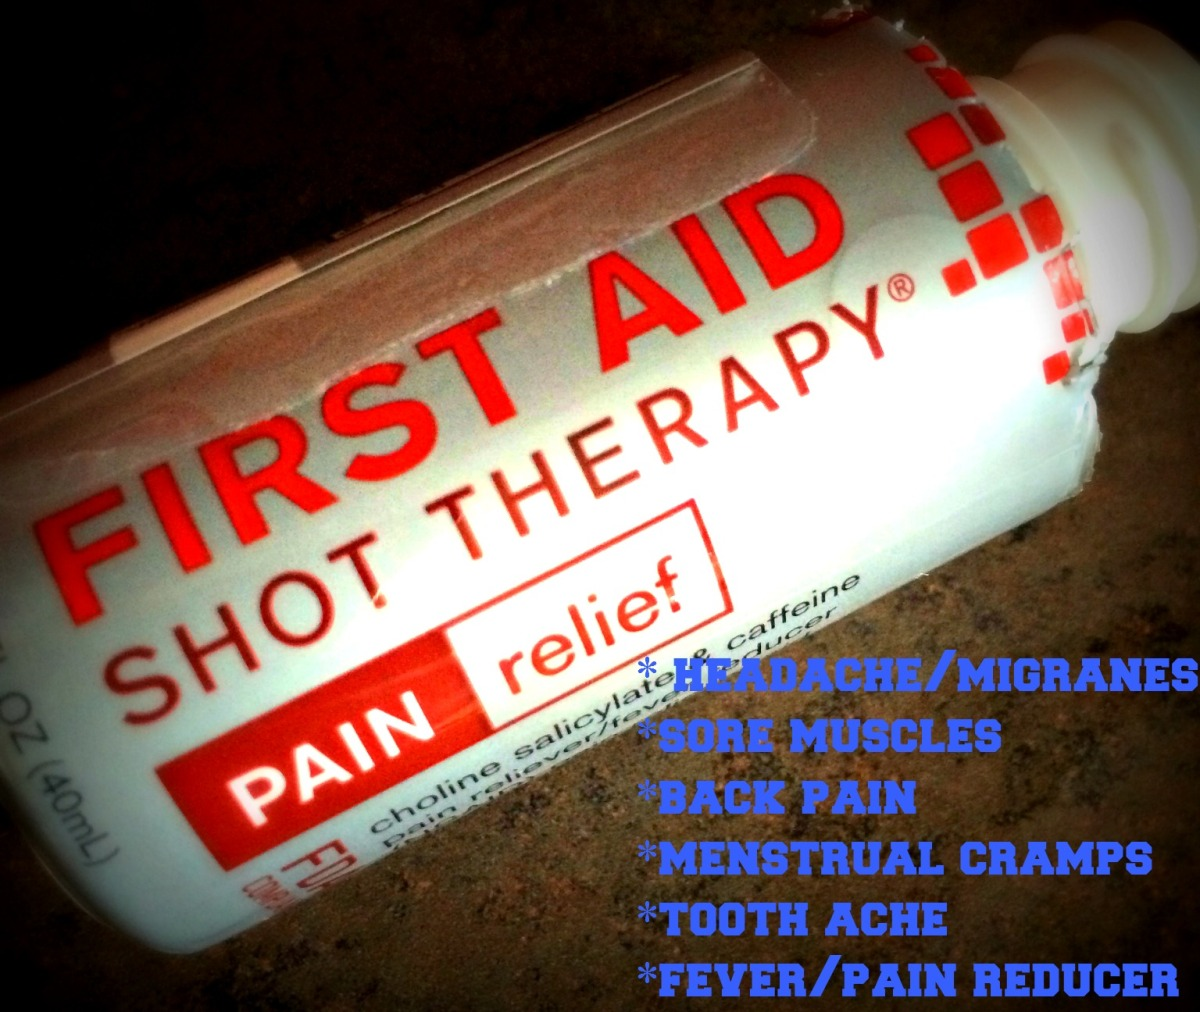 FAST PAIN RELIEF in a DrinkableSHOT